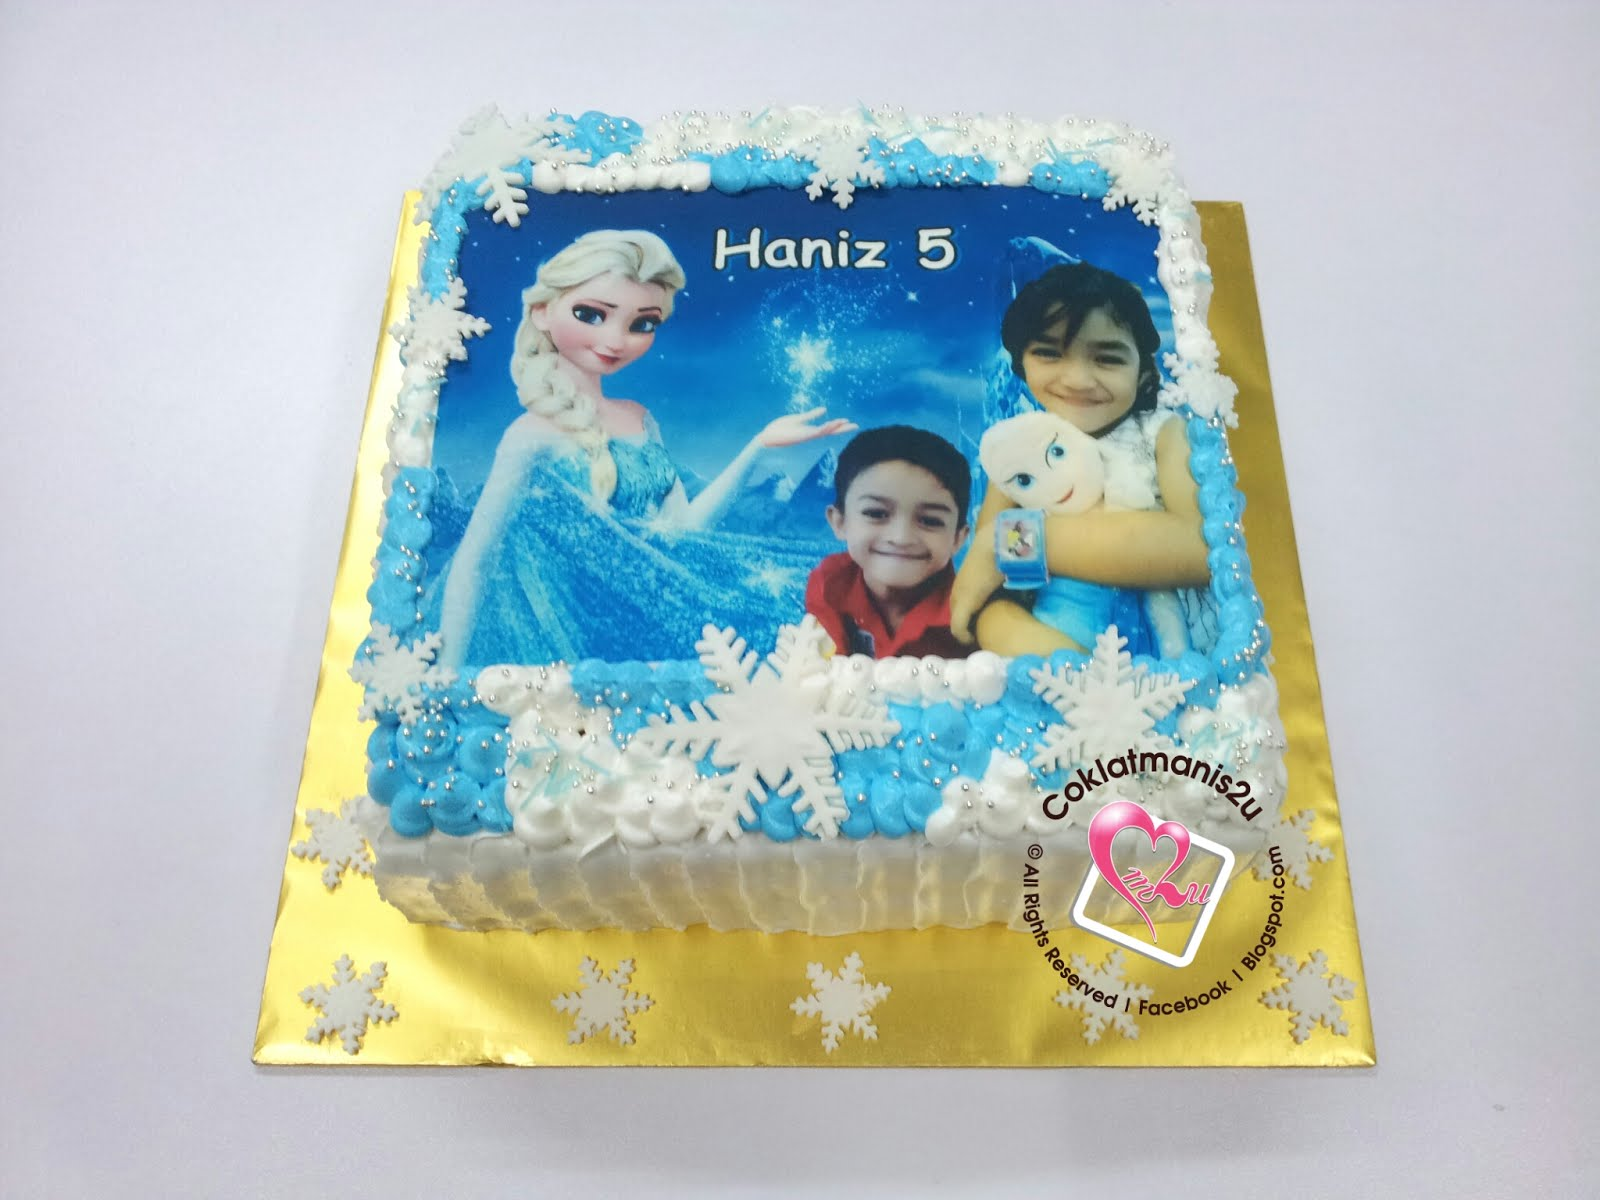 Birthday Cake + Custom Edible Image